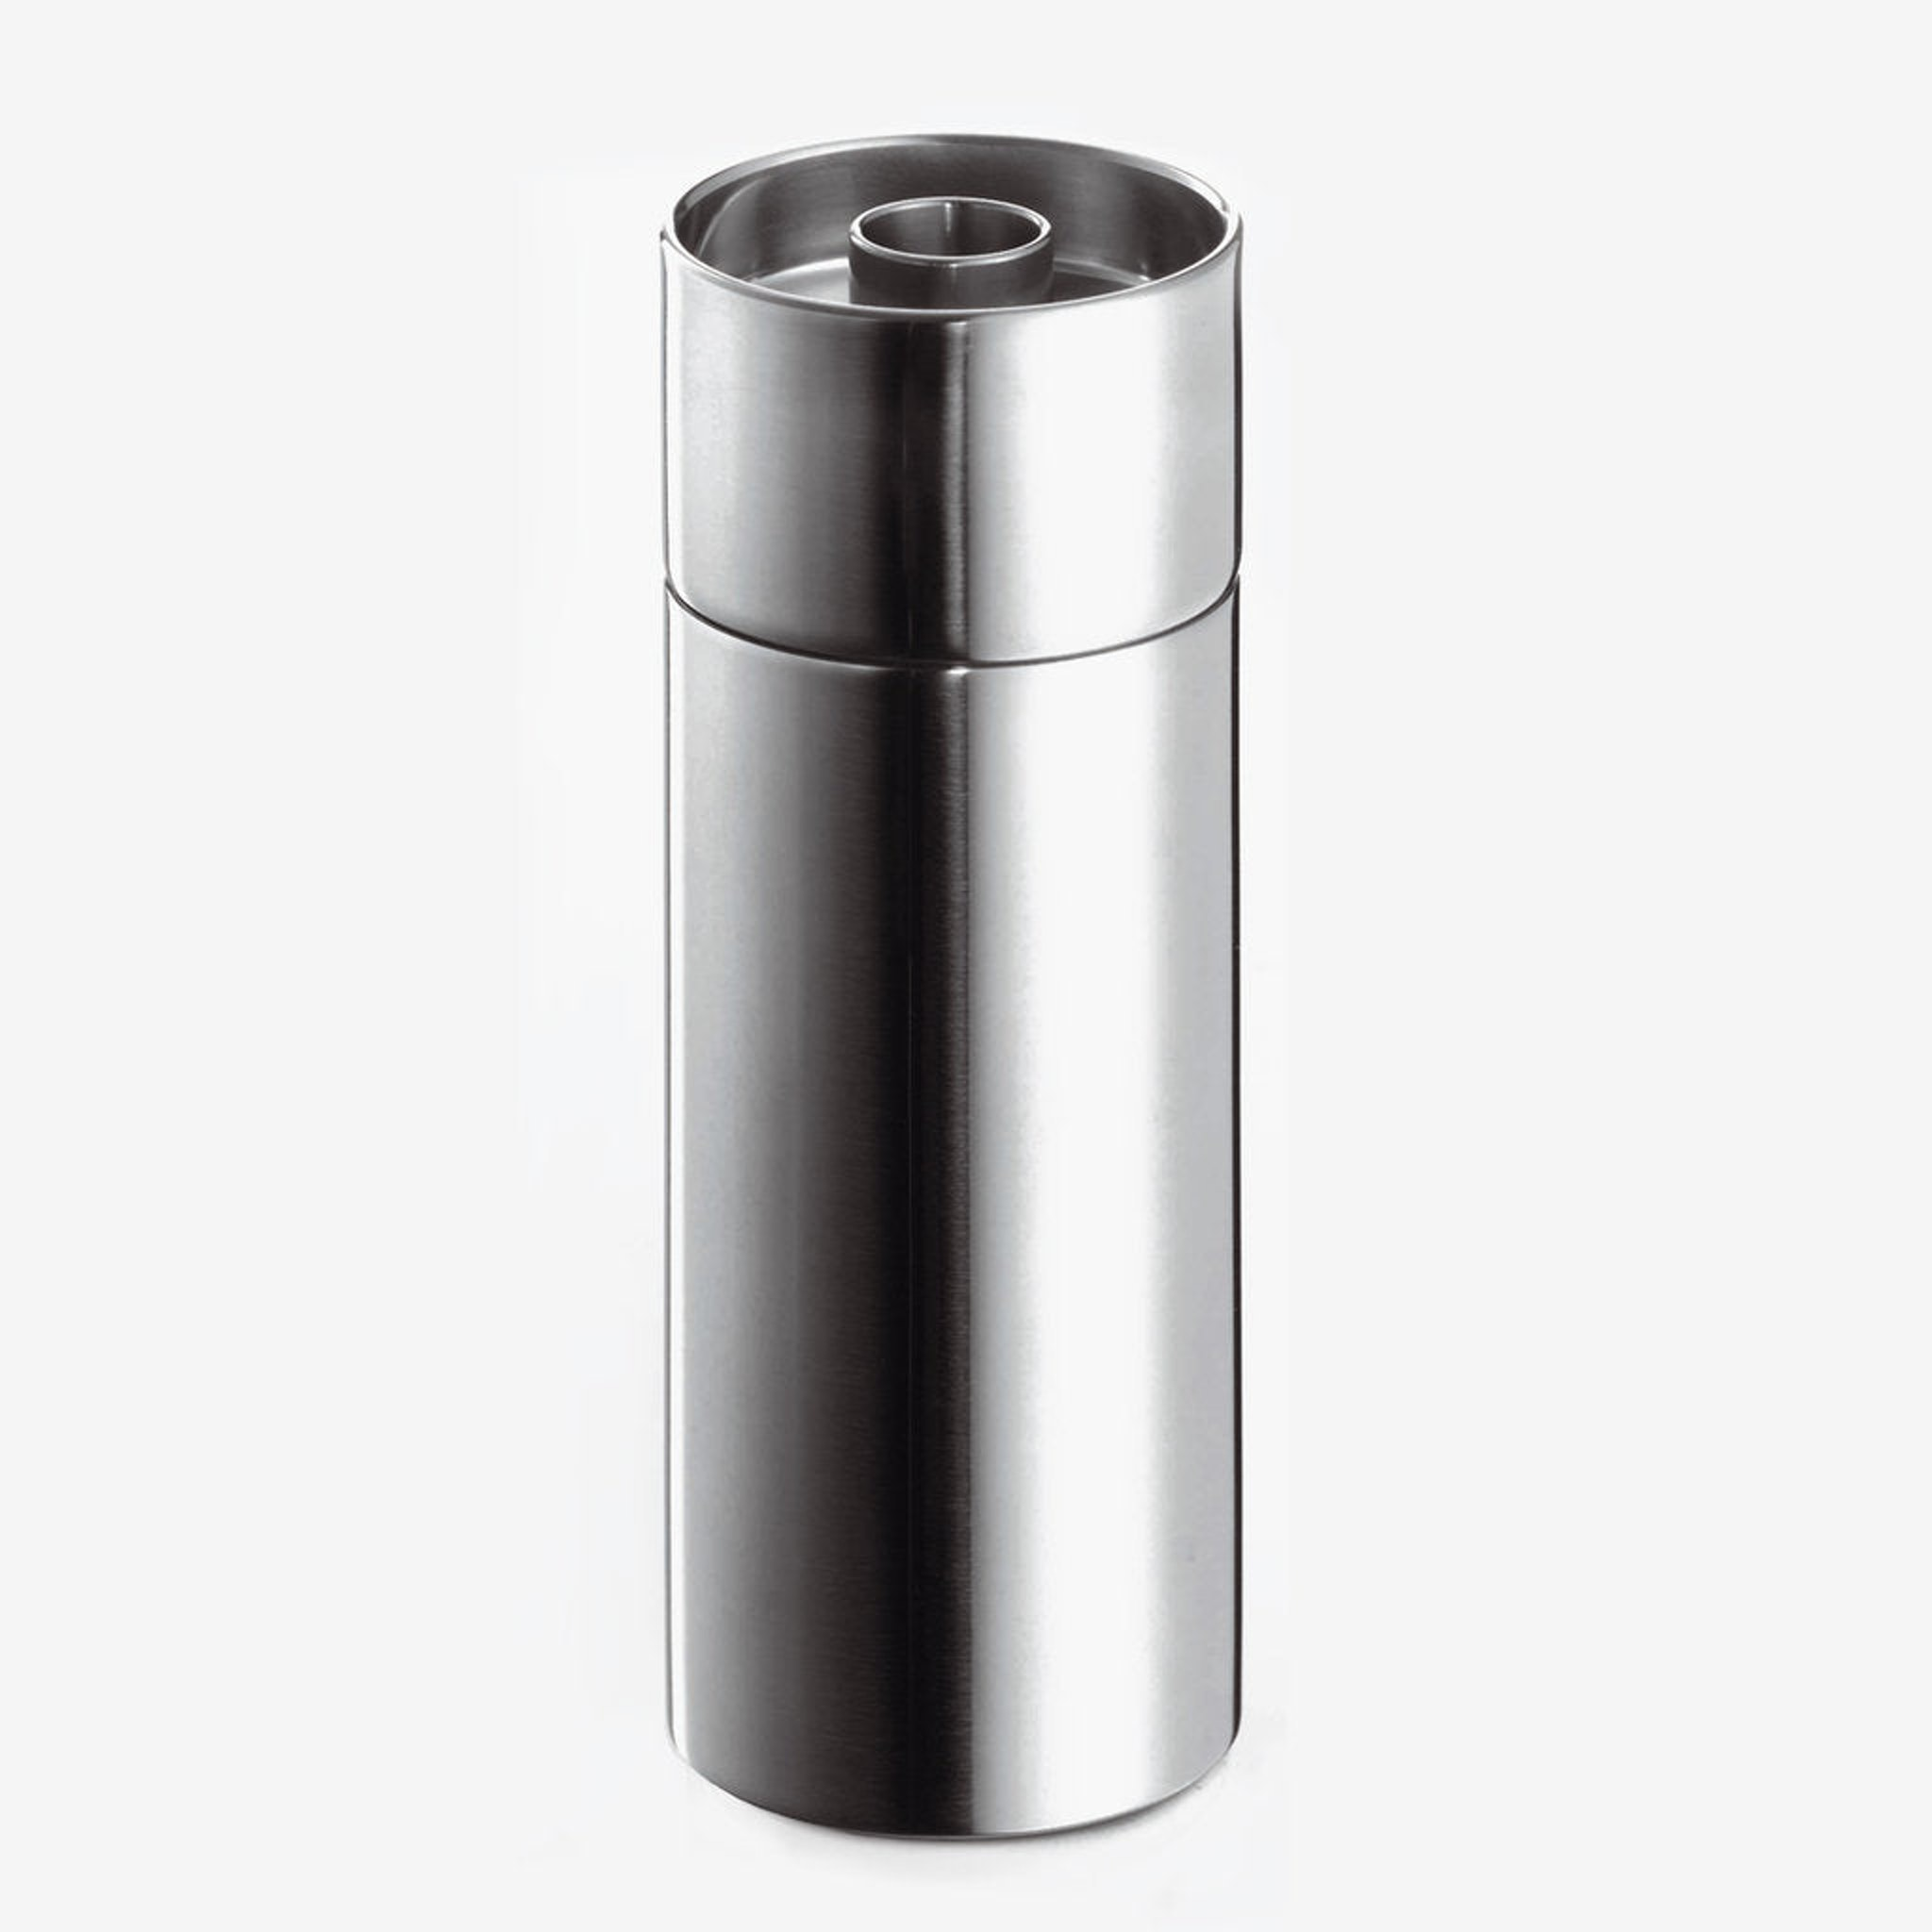 Salt and Pepper Mills by Arne Jacobsen for Stelton